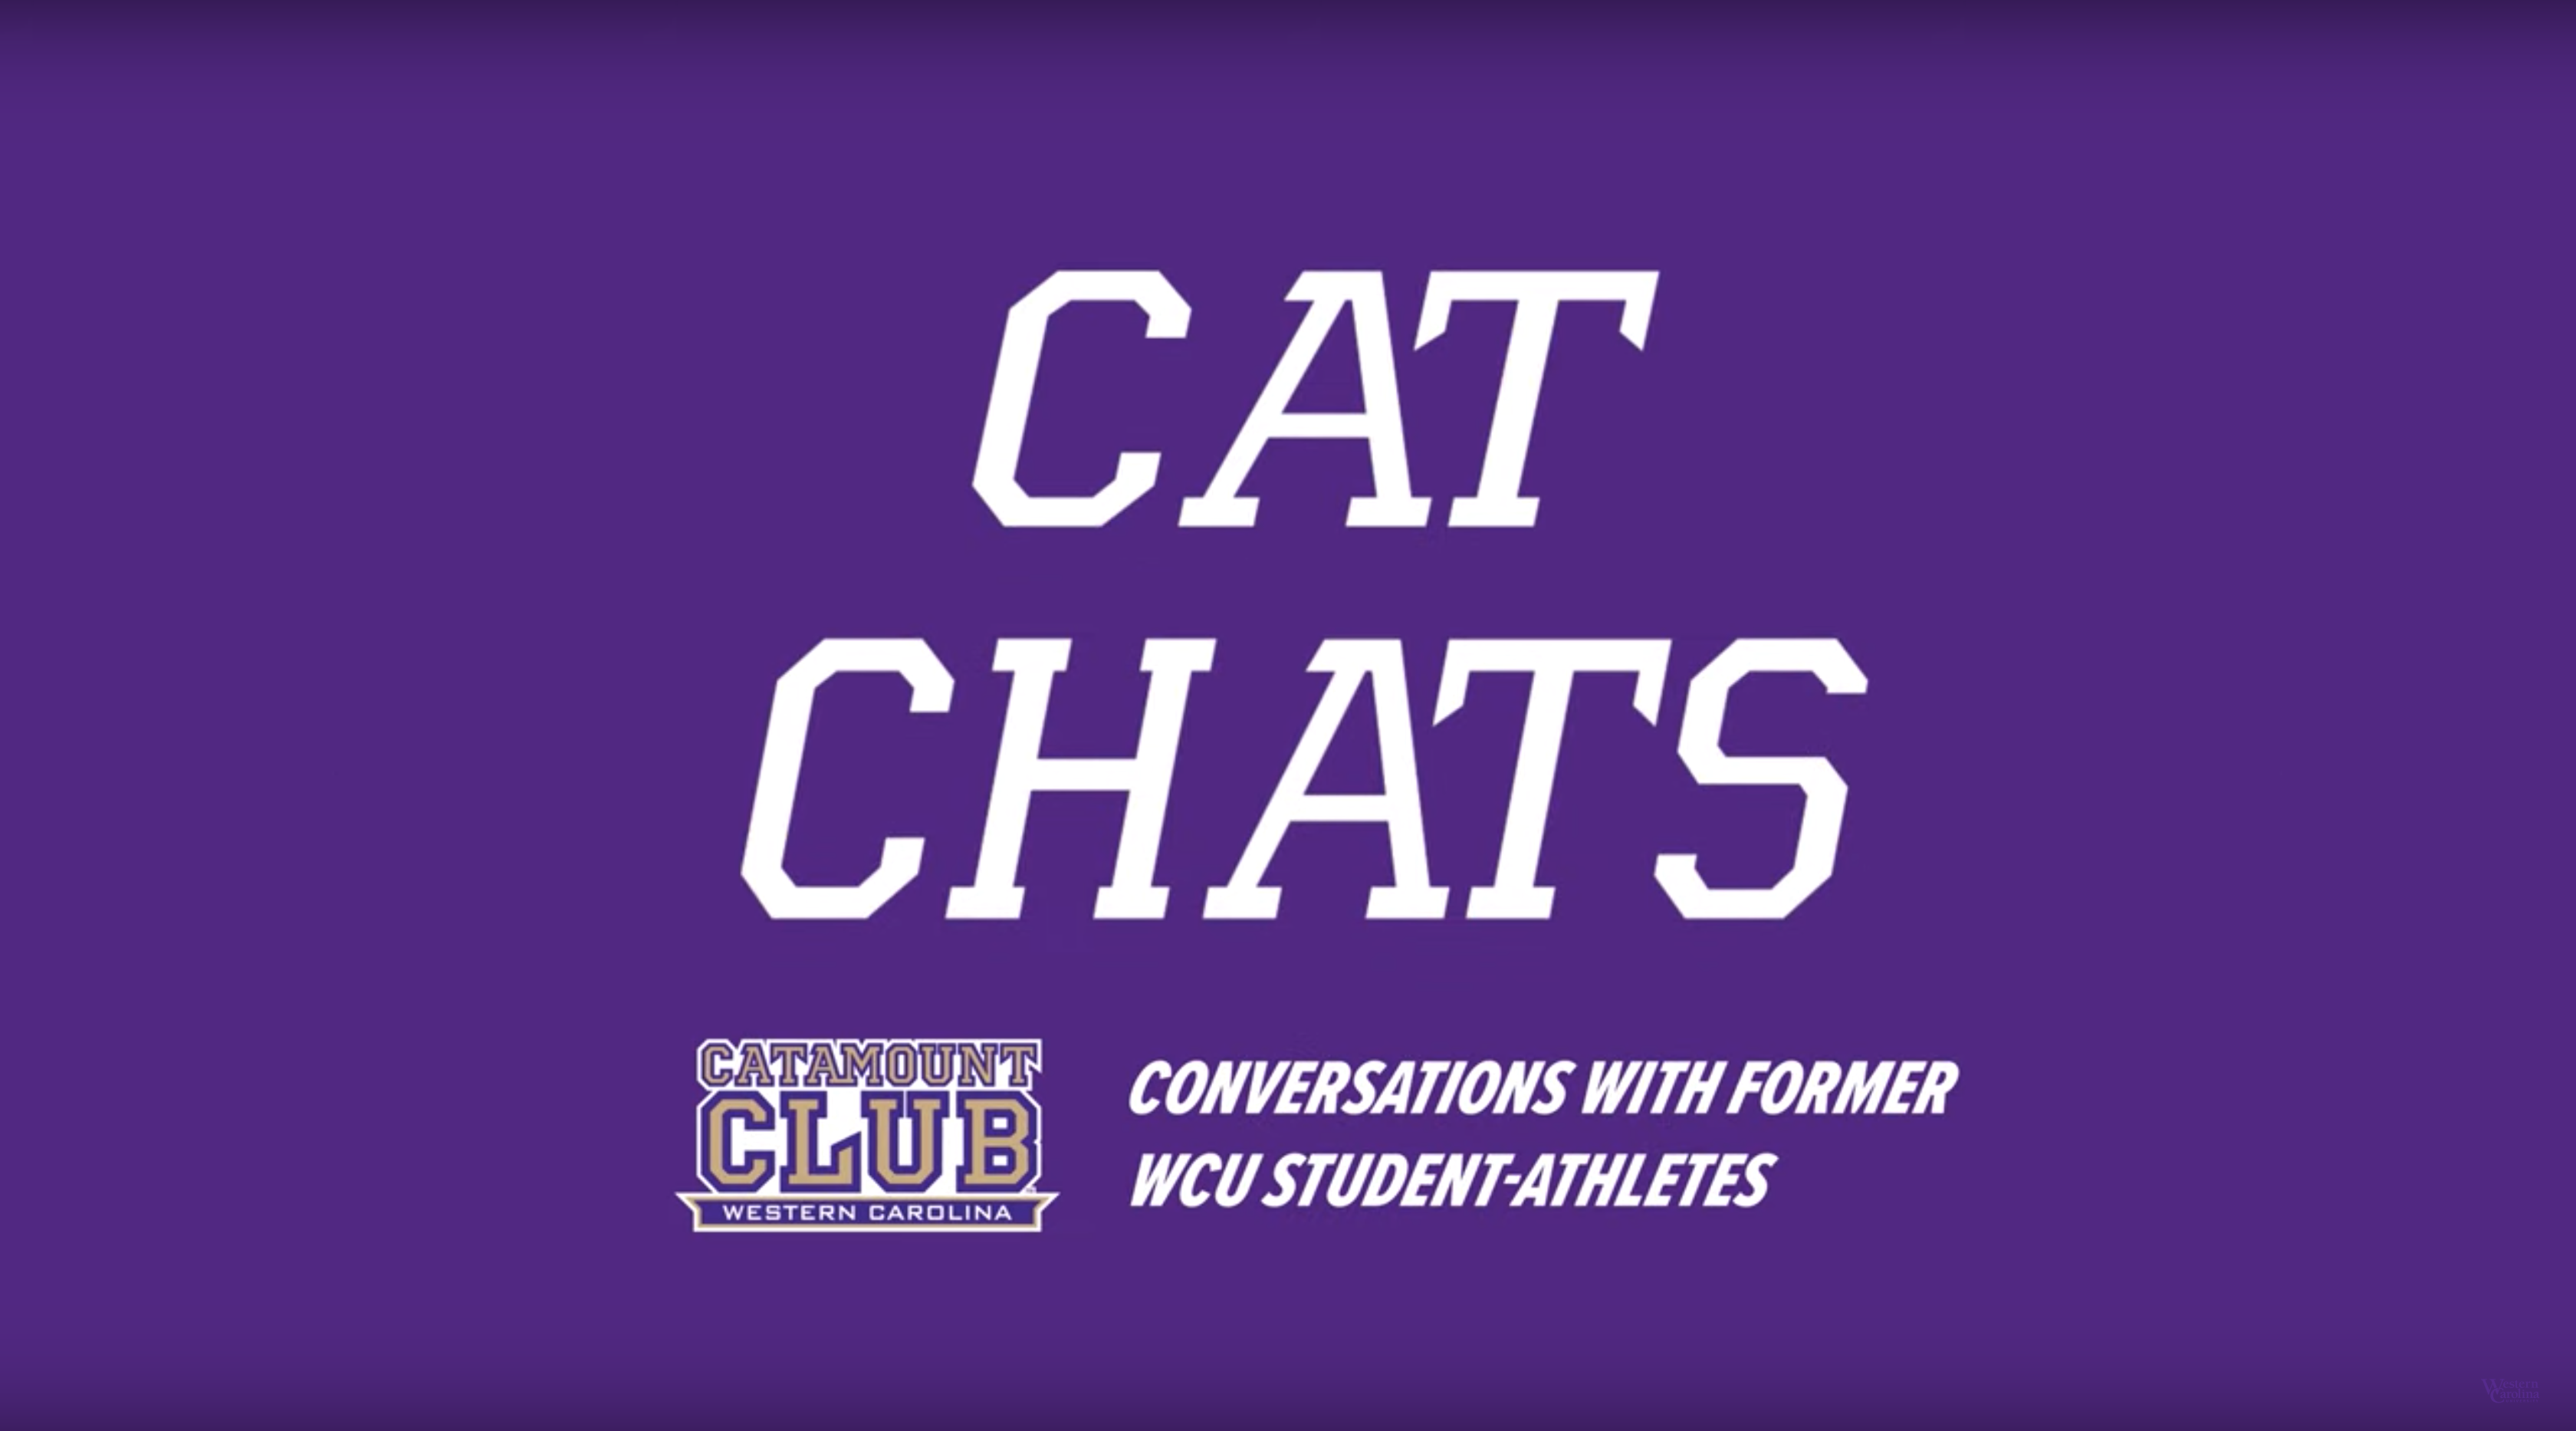 Cat Chats on Purple